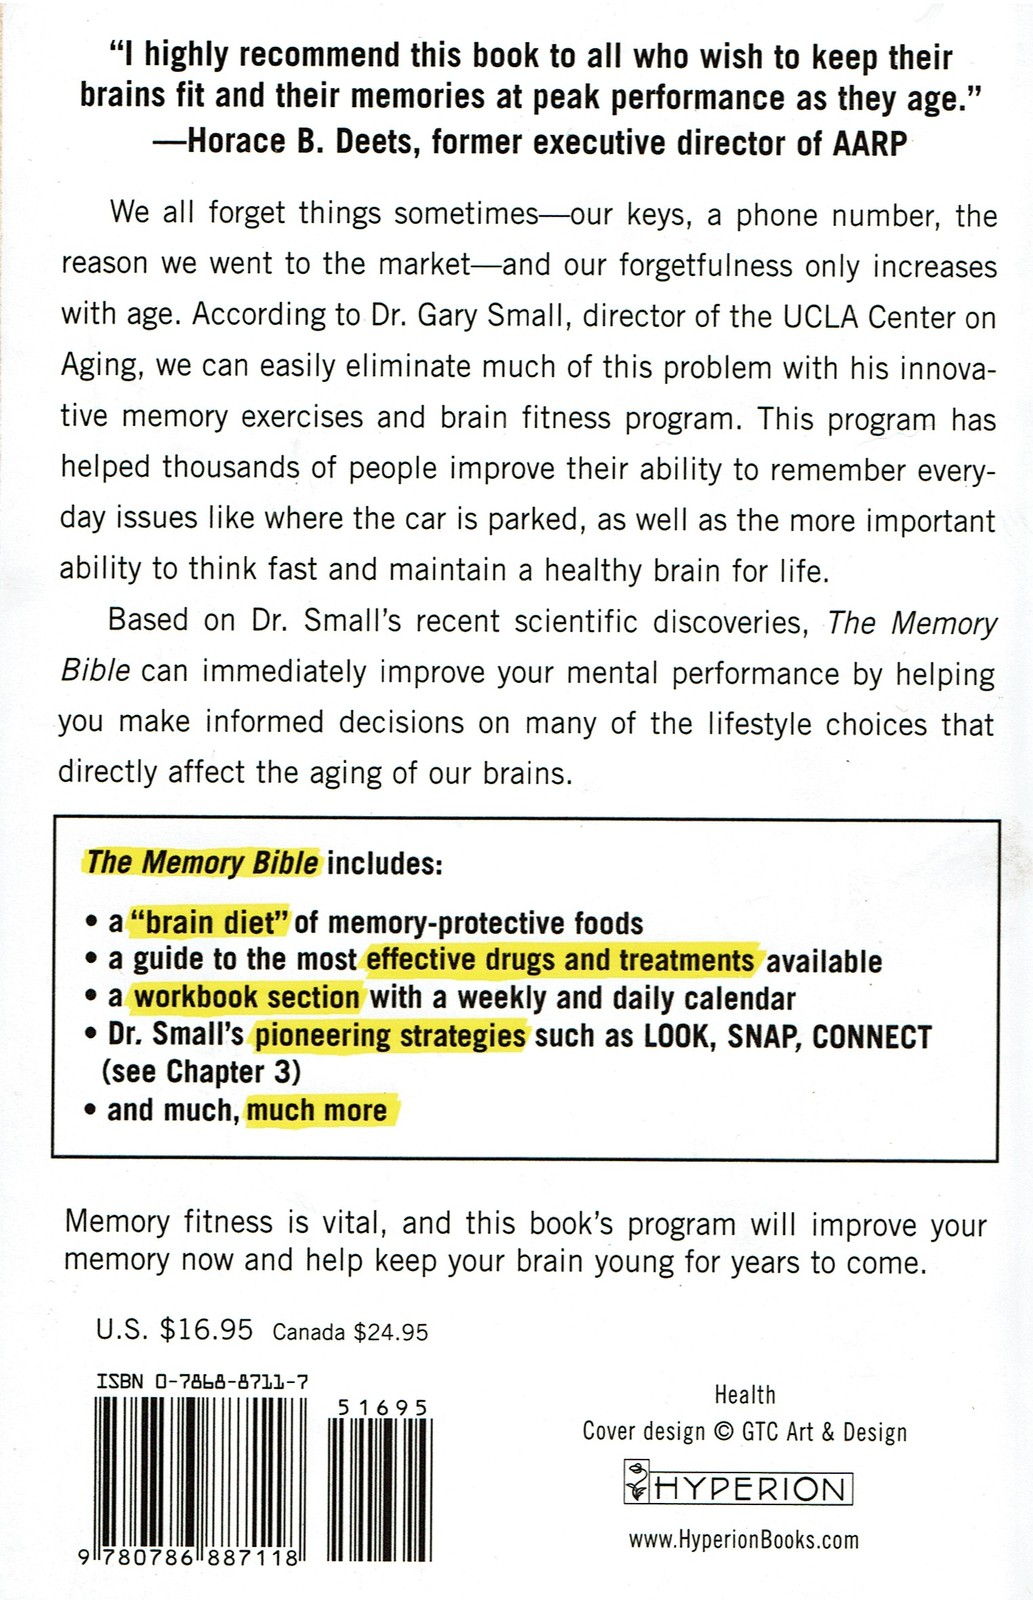 The Memory Bible, by Gary Small, An Innovative Strategy to Keep Your Brain Young